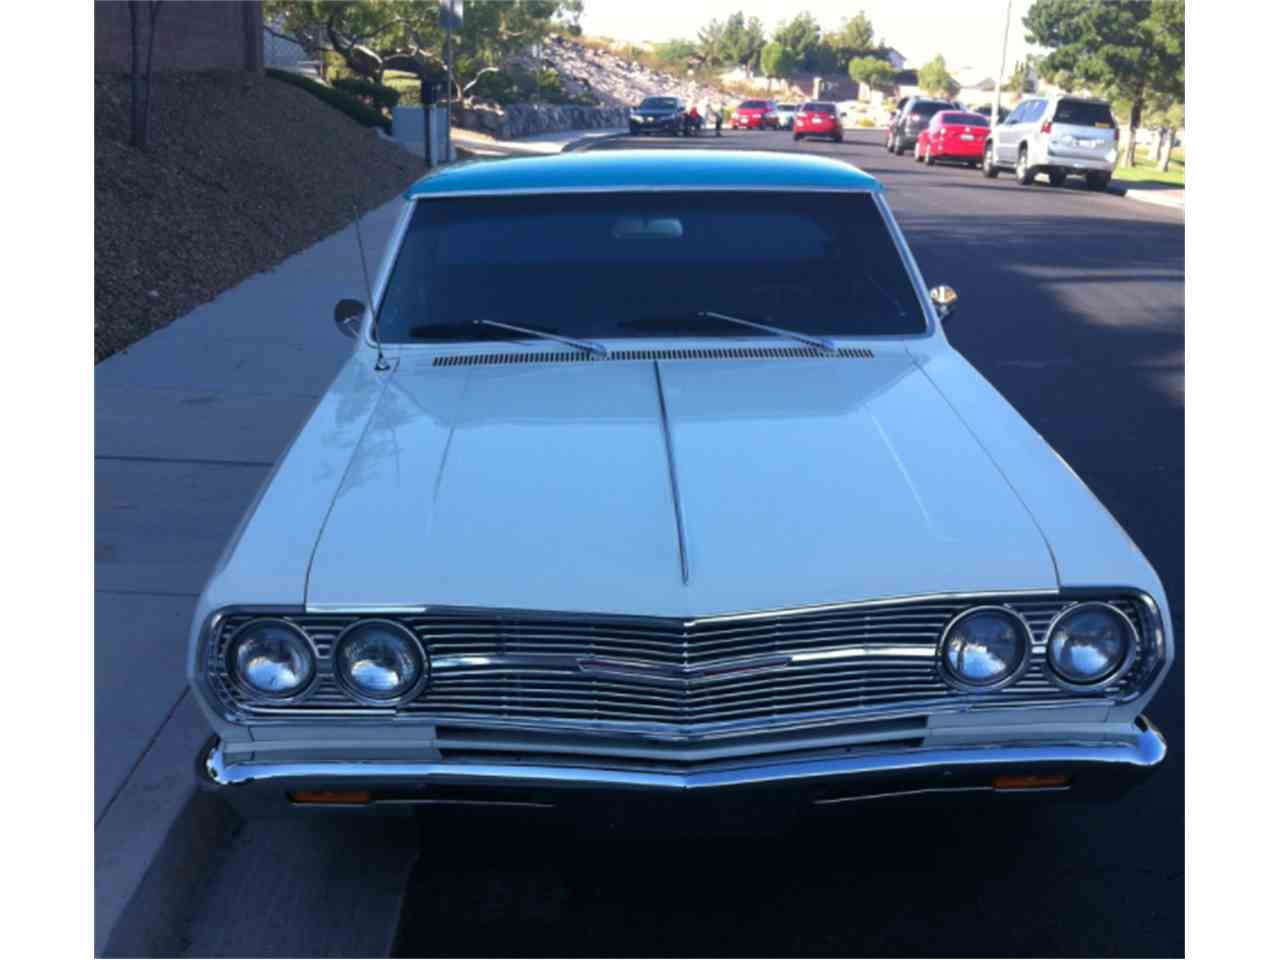 Large Picture of 1965 Chevrolet El Camino located in Nevada - $15,500.00 Offered by a Private Seller - L022